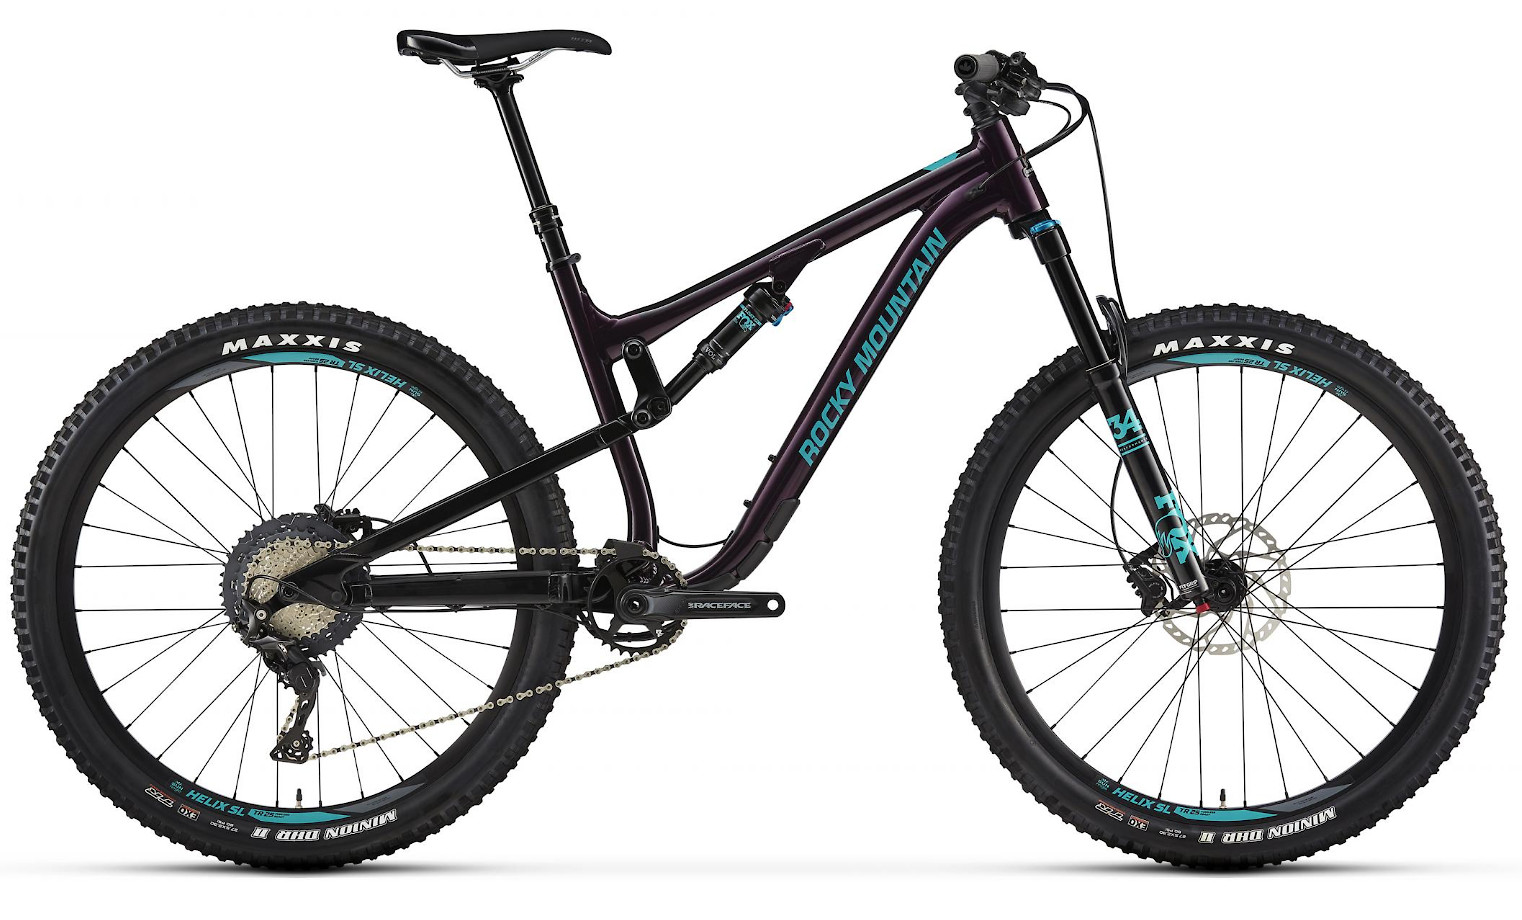 2019 Rocky Mountain Thunderbolt Alloy 50 - Dark purple